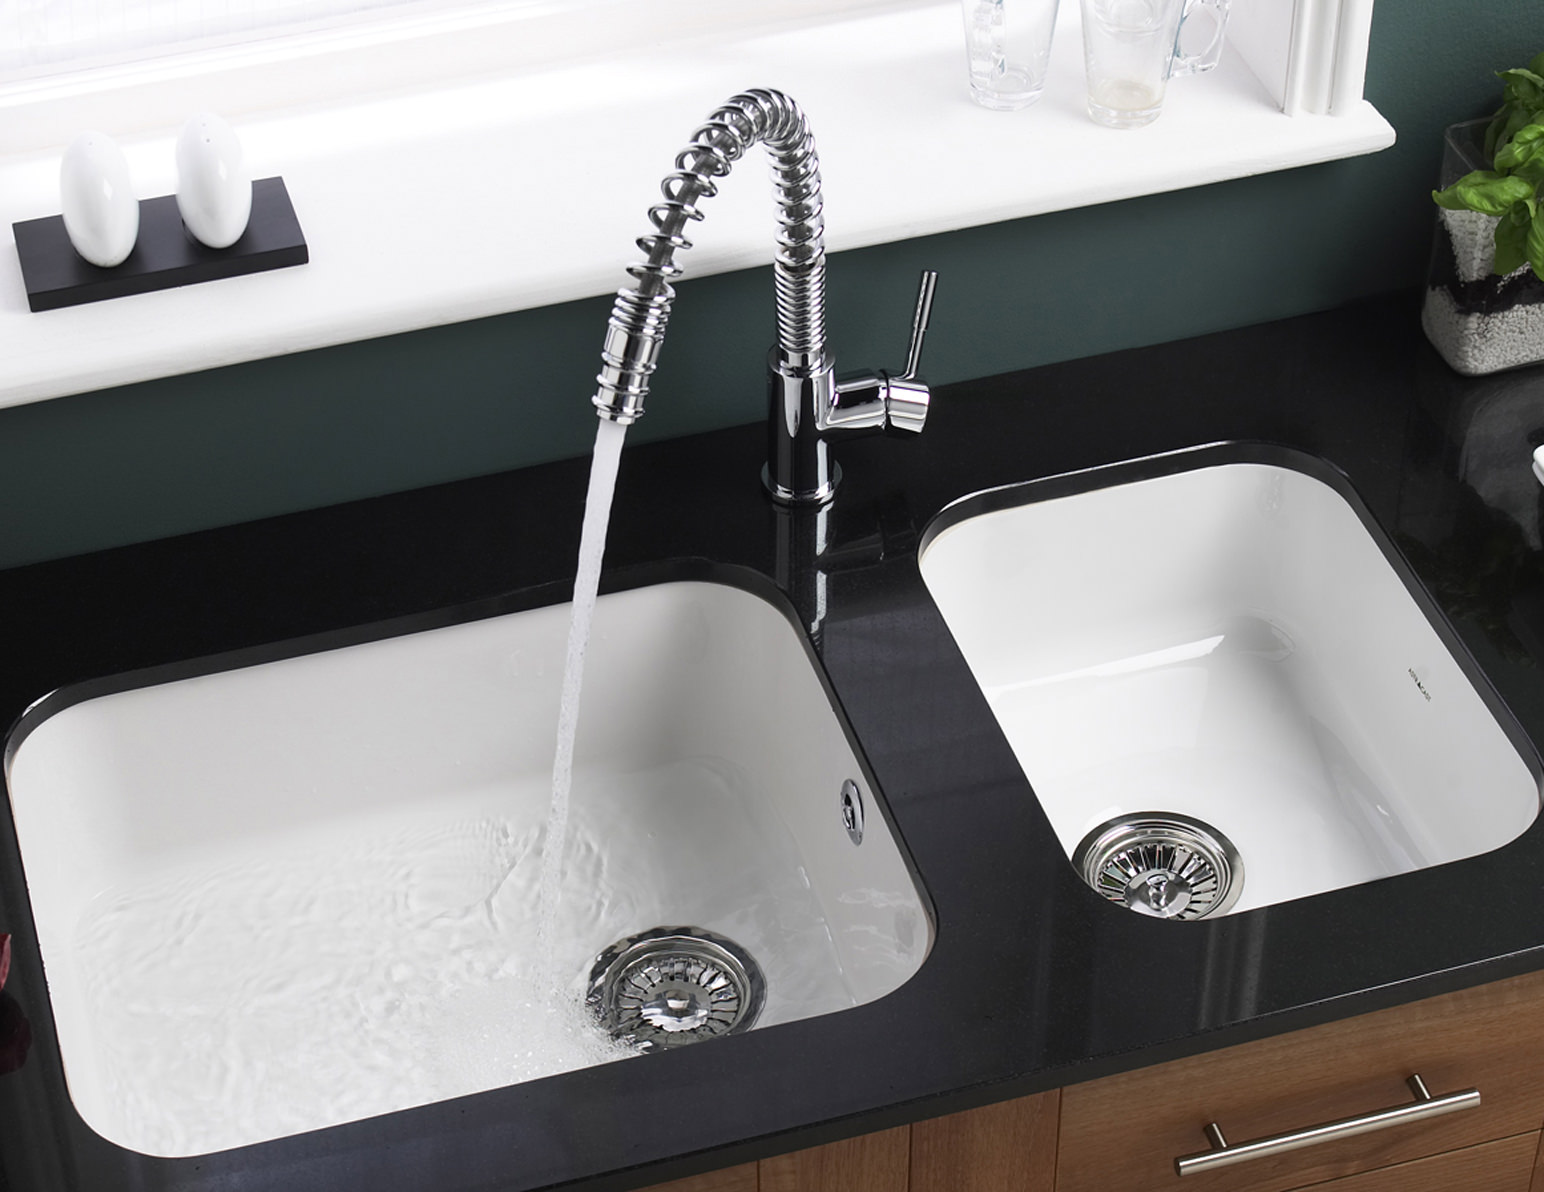 Astracast lincoln 5040 main bowl ceramic gloss white - Undermount ceramic kitchen sink ...